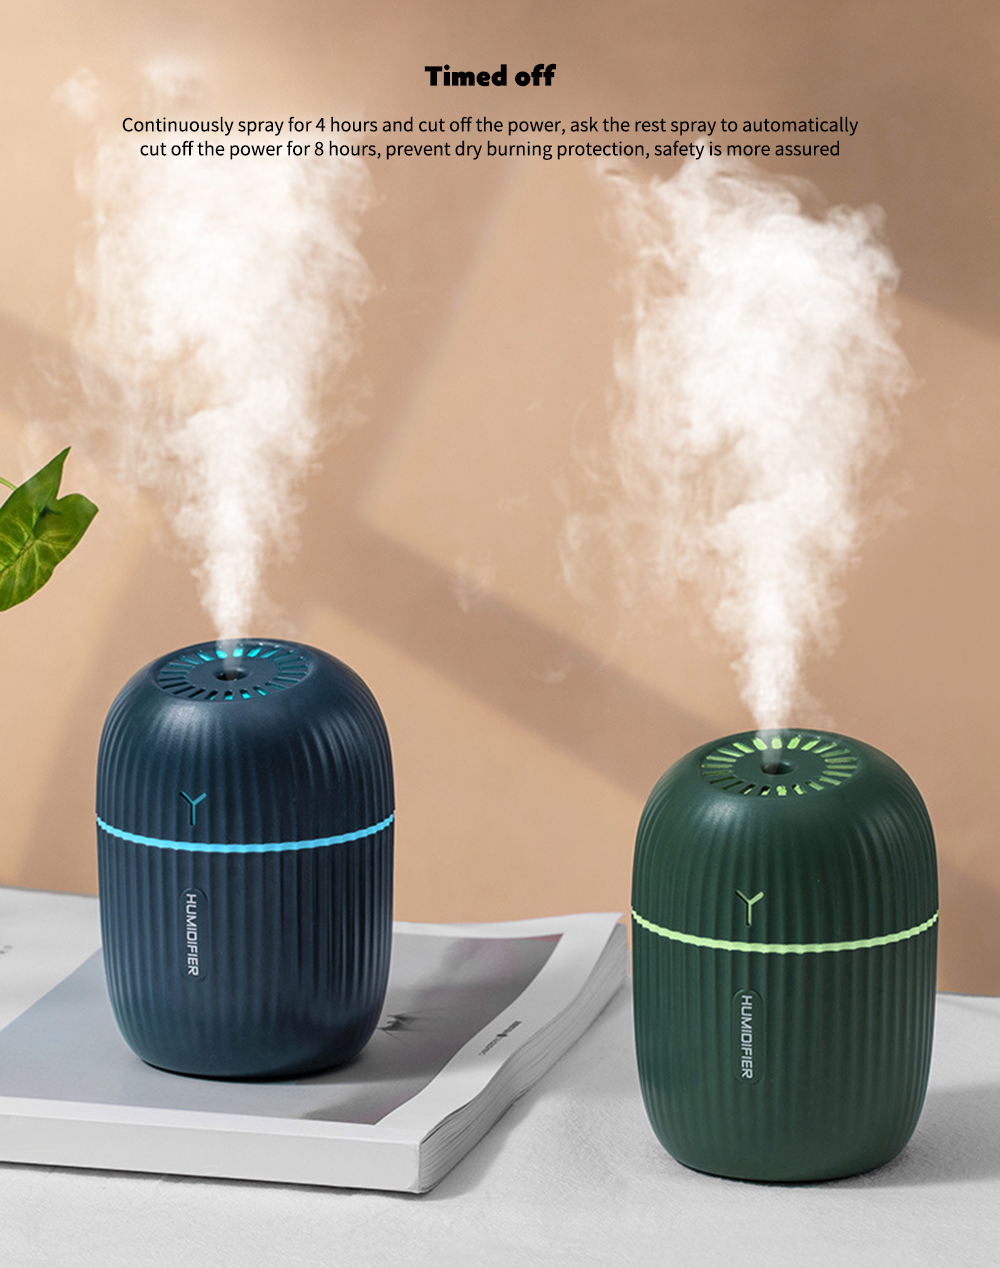 Q8-001 USB Humidifier Timed off